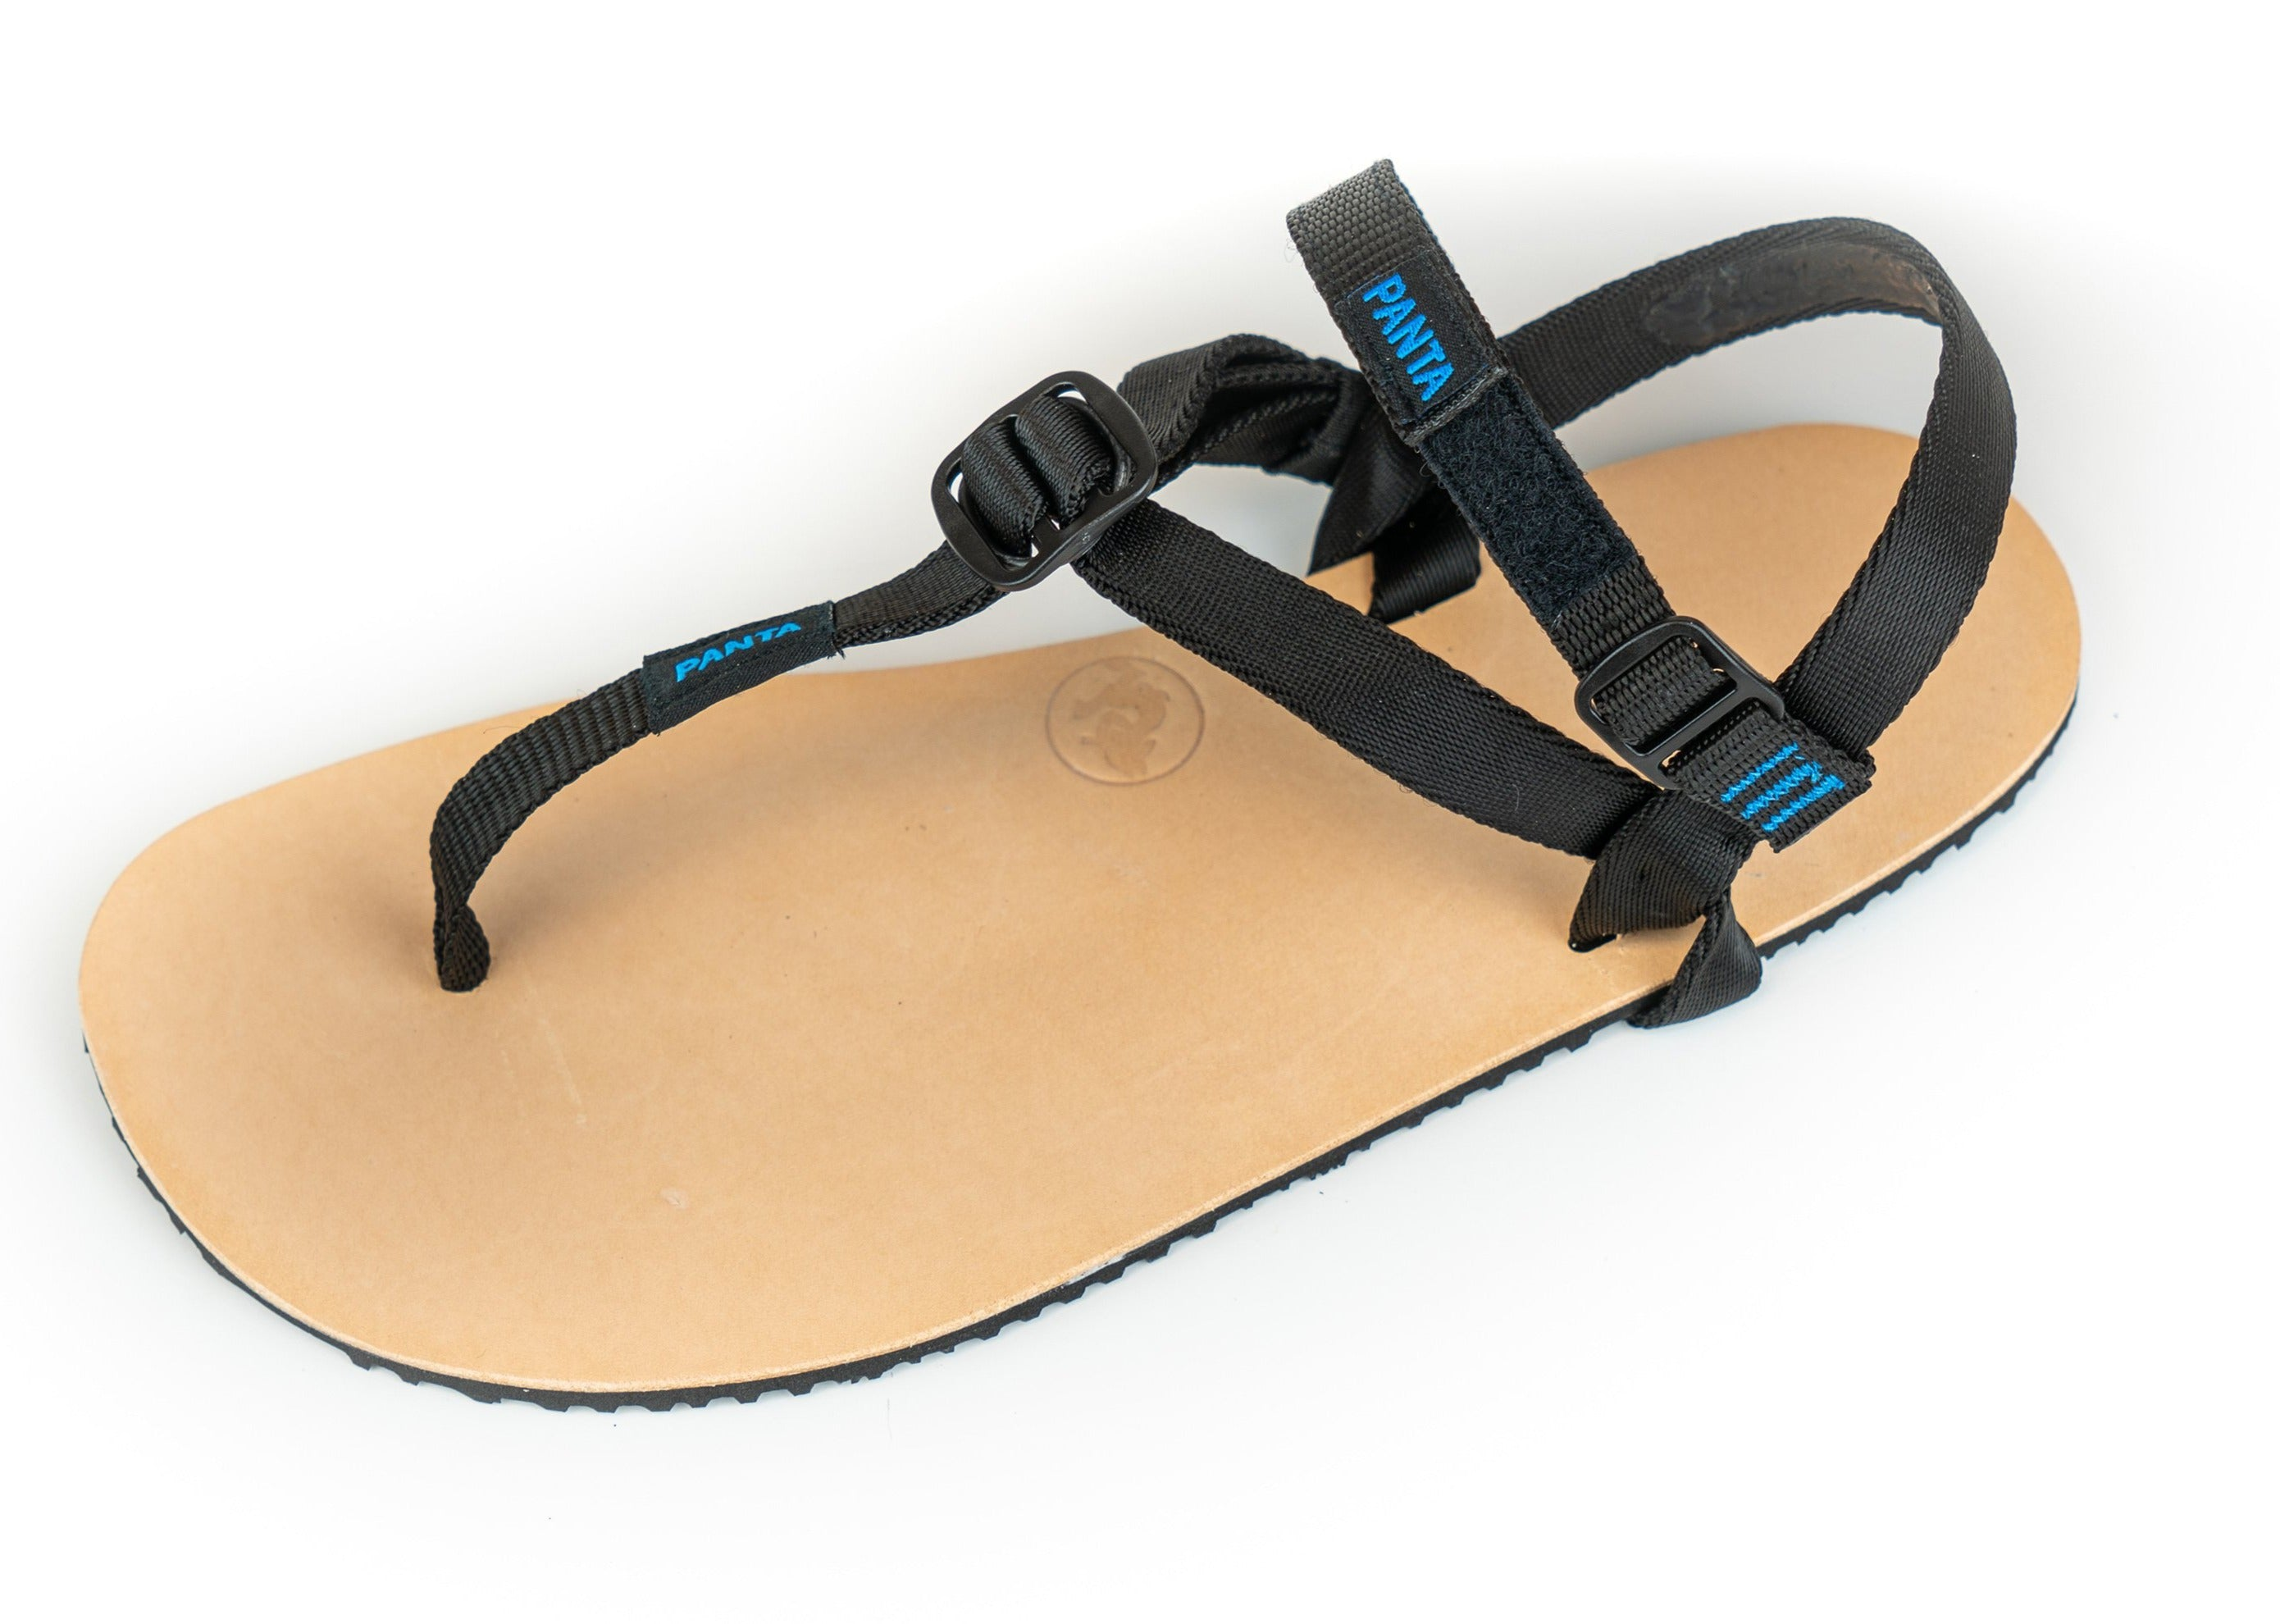 Lykaios sandals with Thoknia straps attached